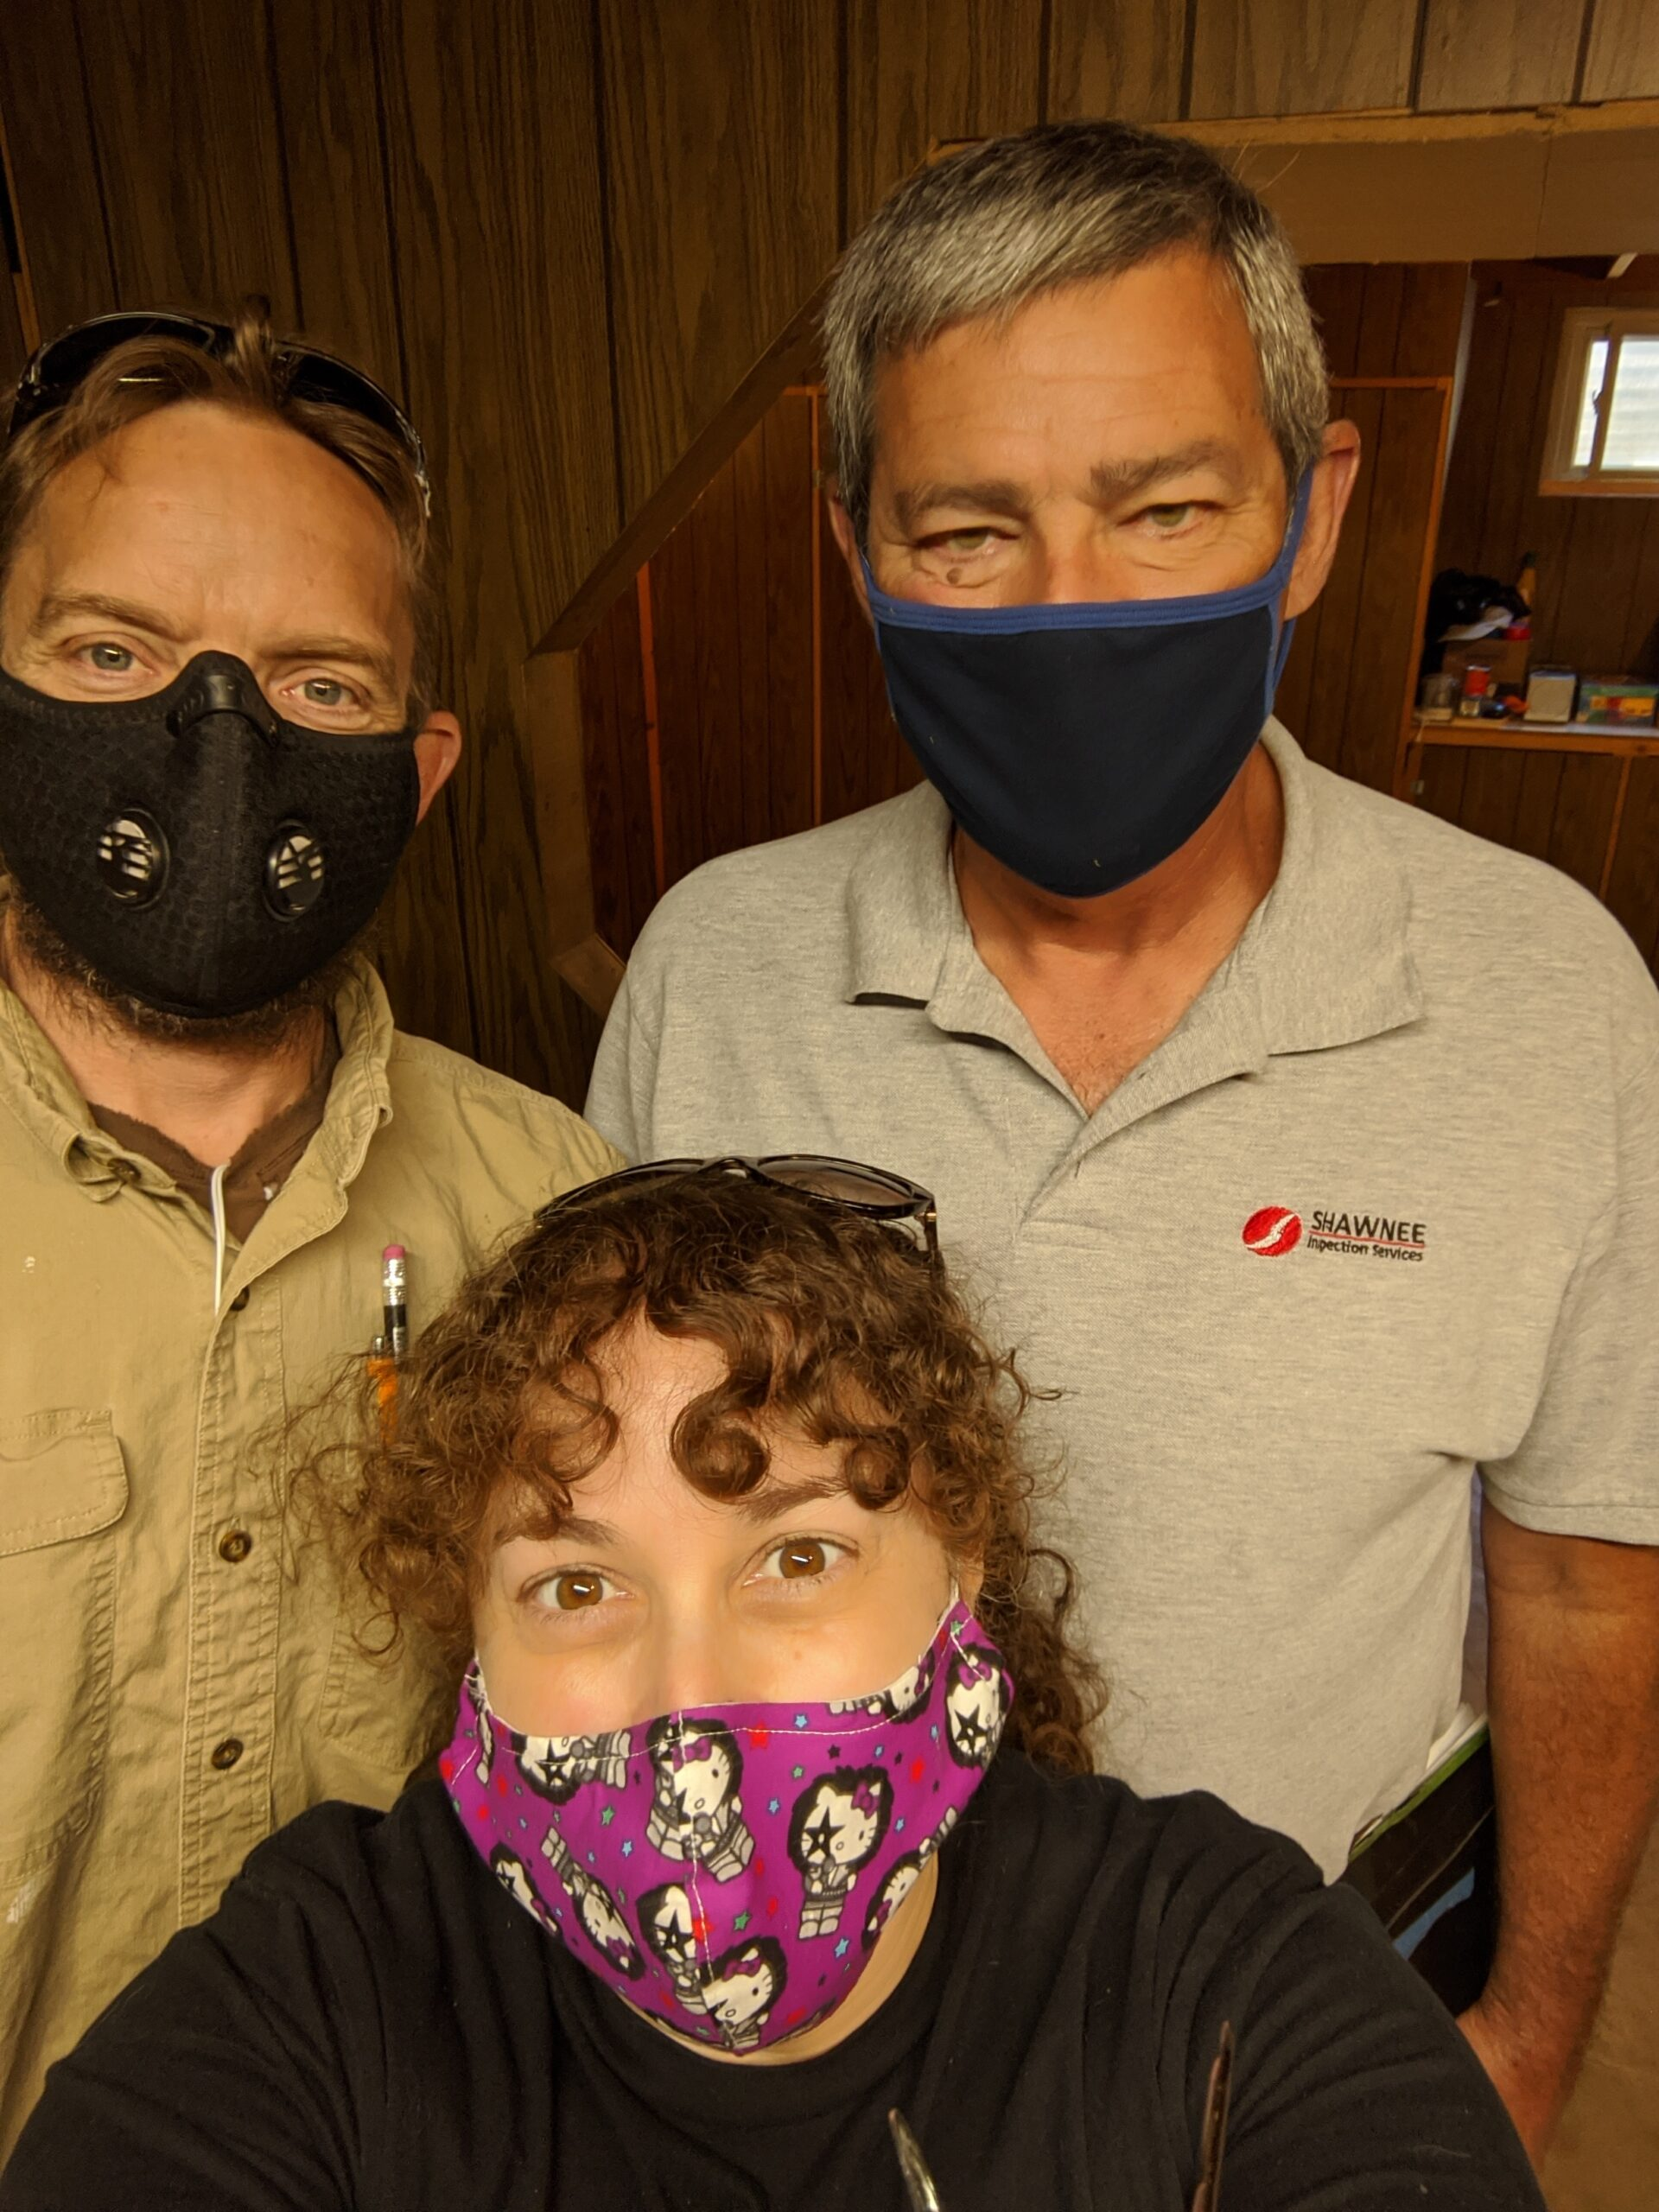 Home Inspections during COVID-19: General contractors & first-time homebuyers, Josh & Mim, and home inspector Dan all wore masks.